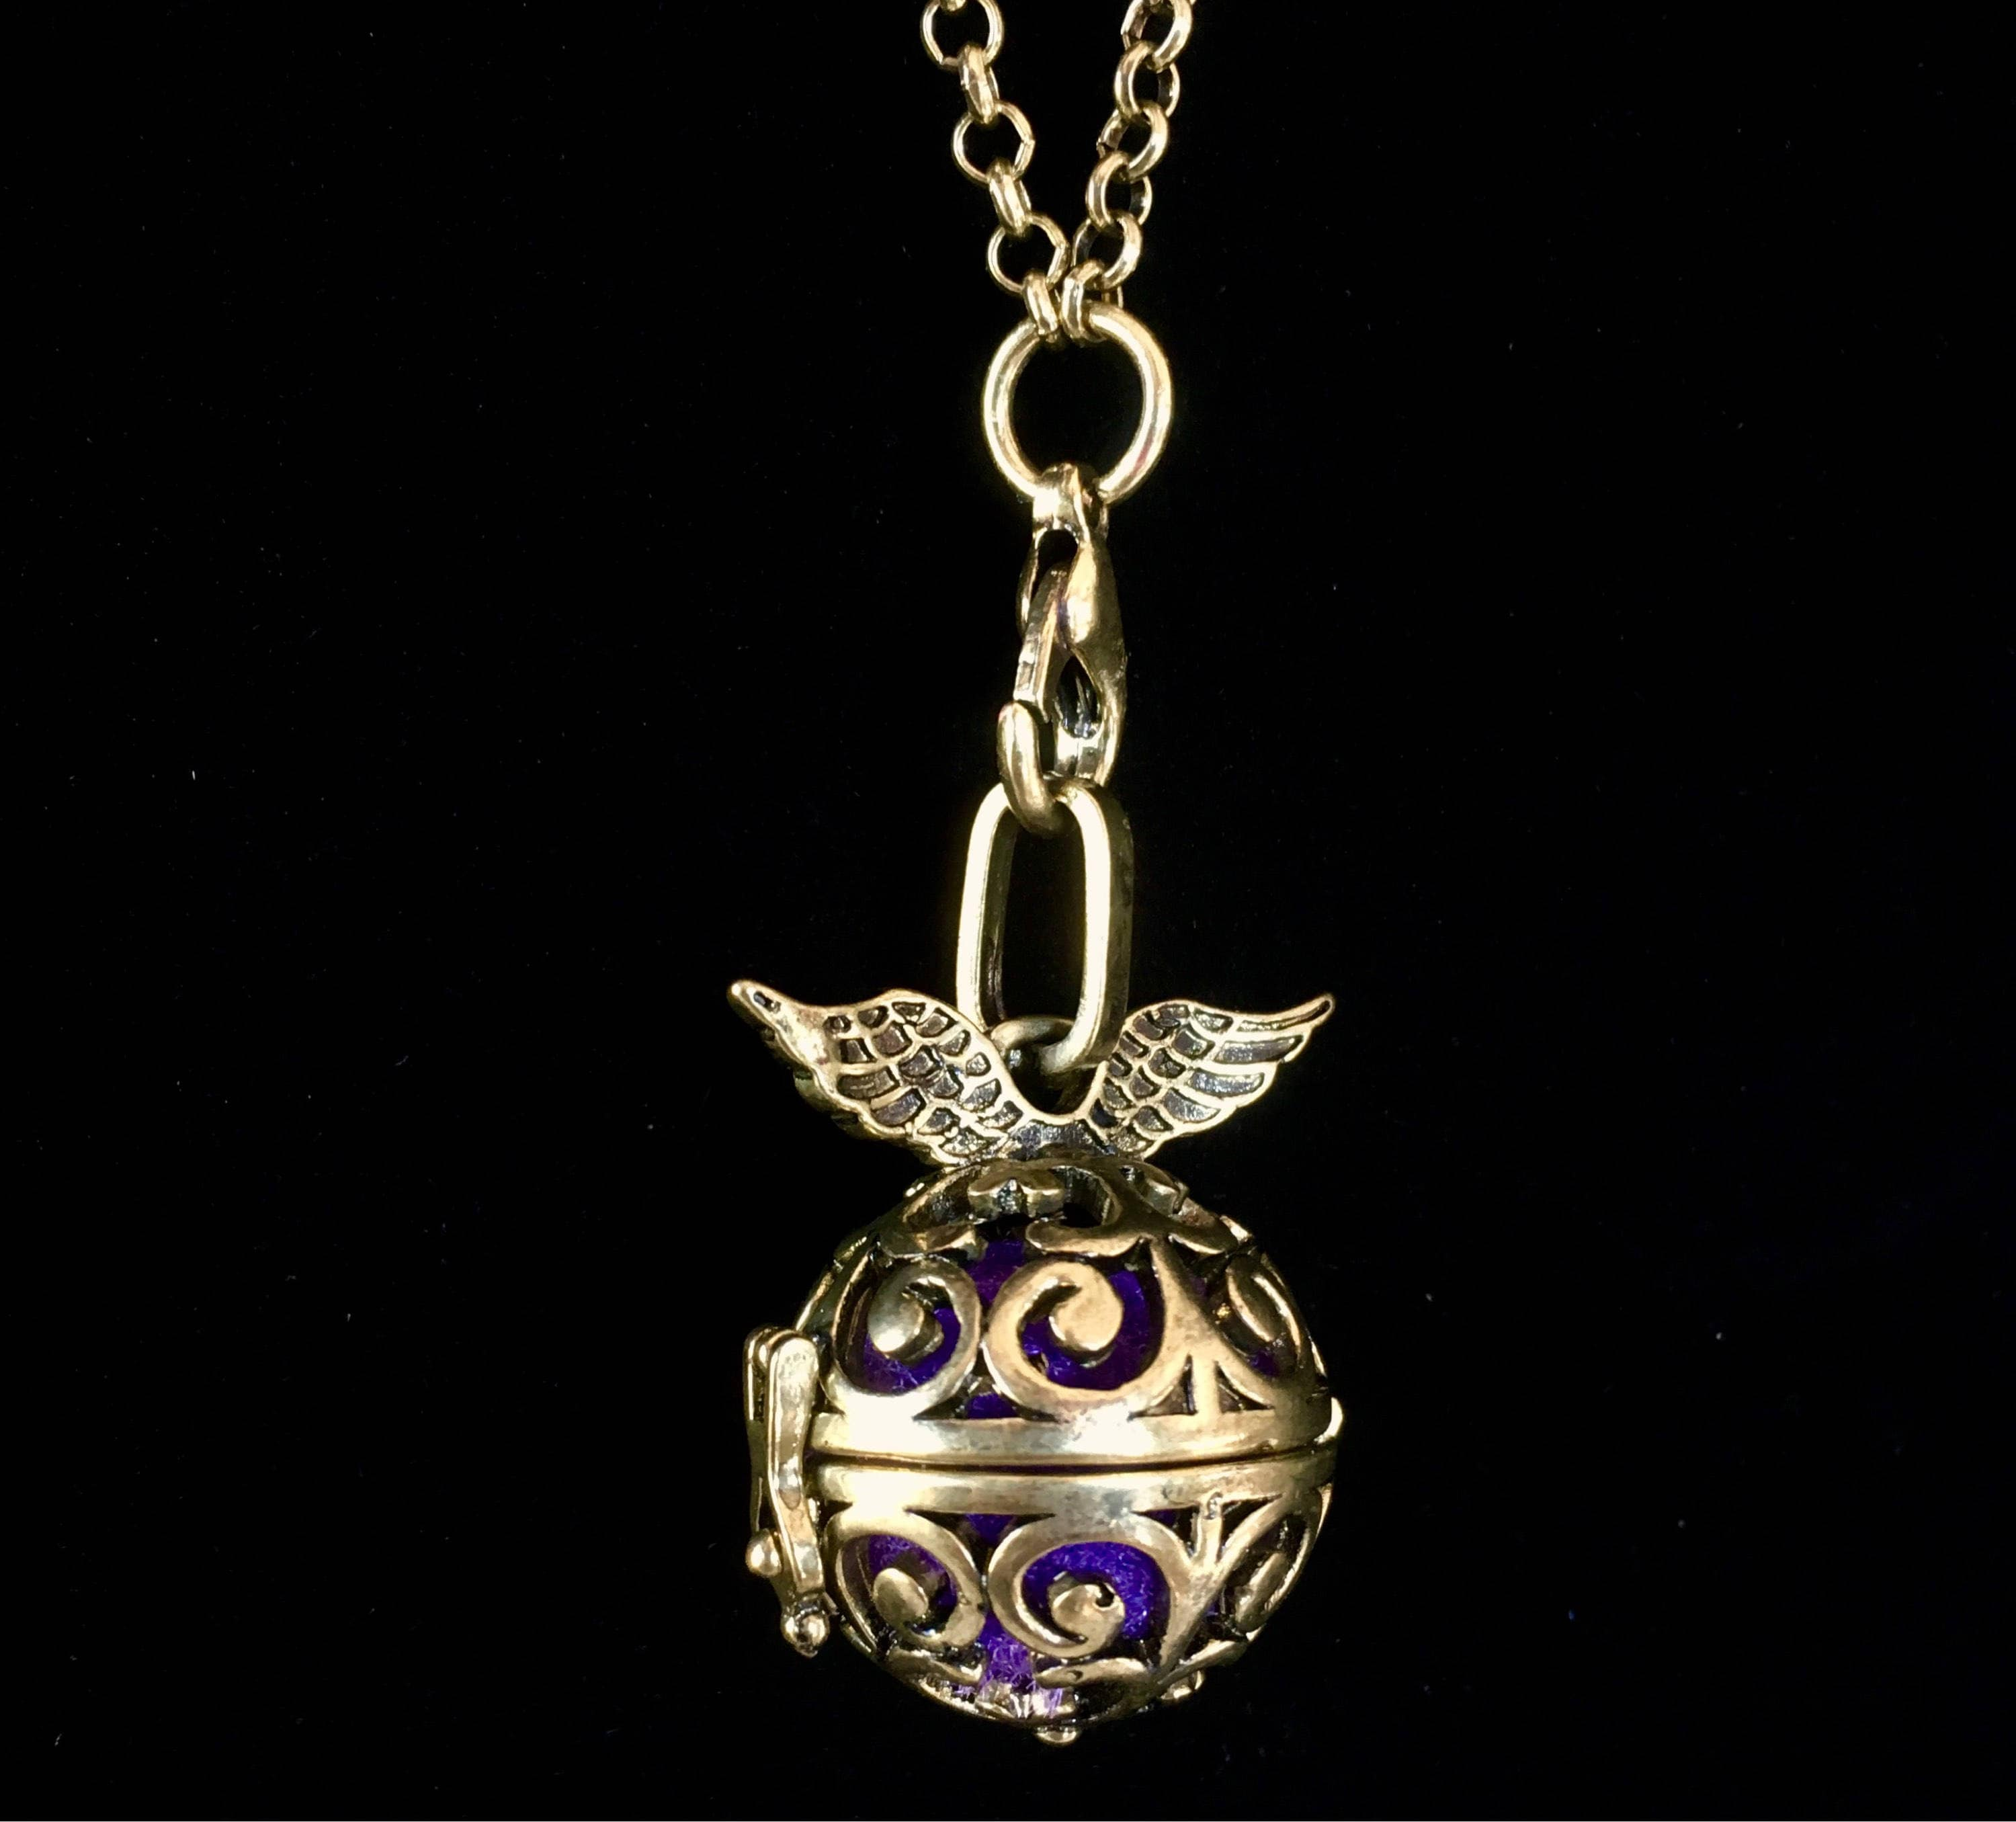 tree products oil pendant diffuser essential stainless steel with locket necklace life chain profil of adjustable